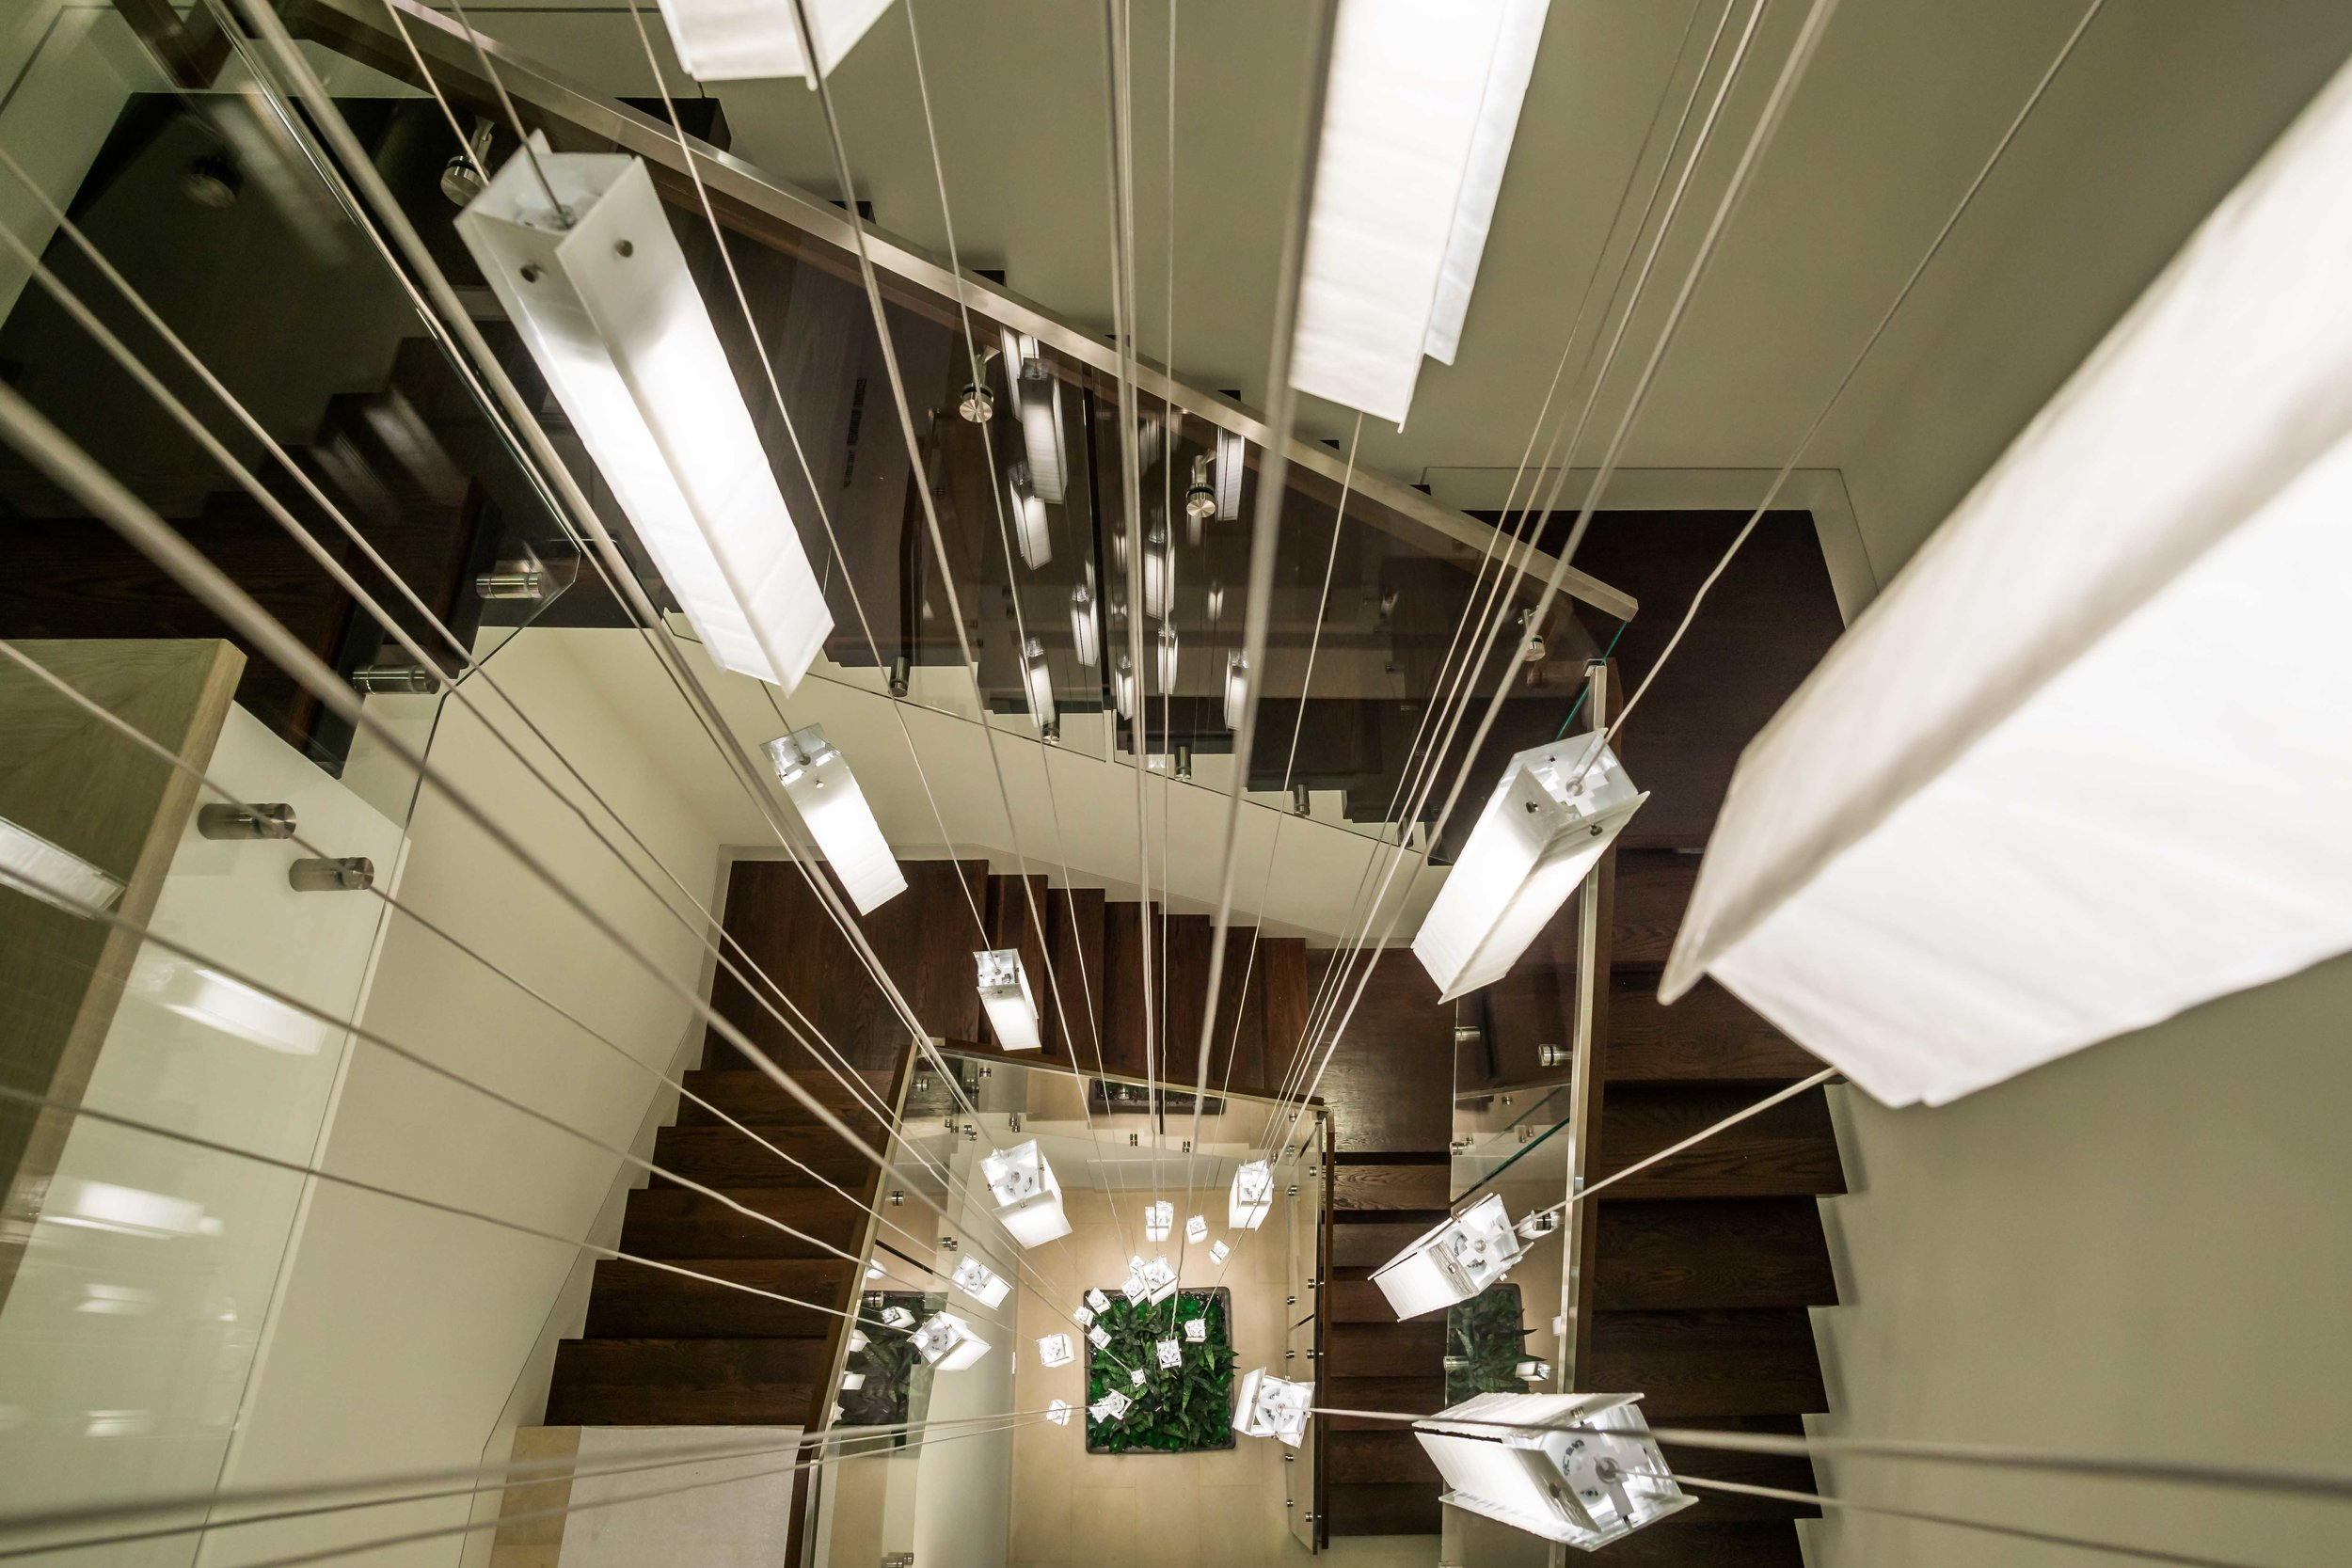 Interior real estate photograph Of Massive Modern minimal chandelier That isThree stories high